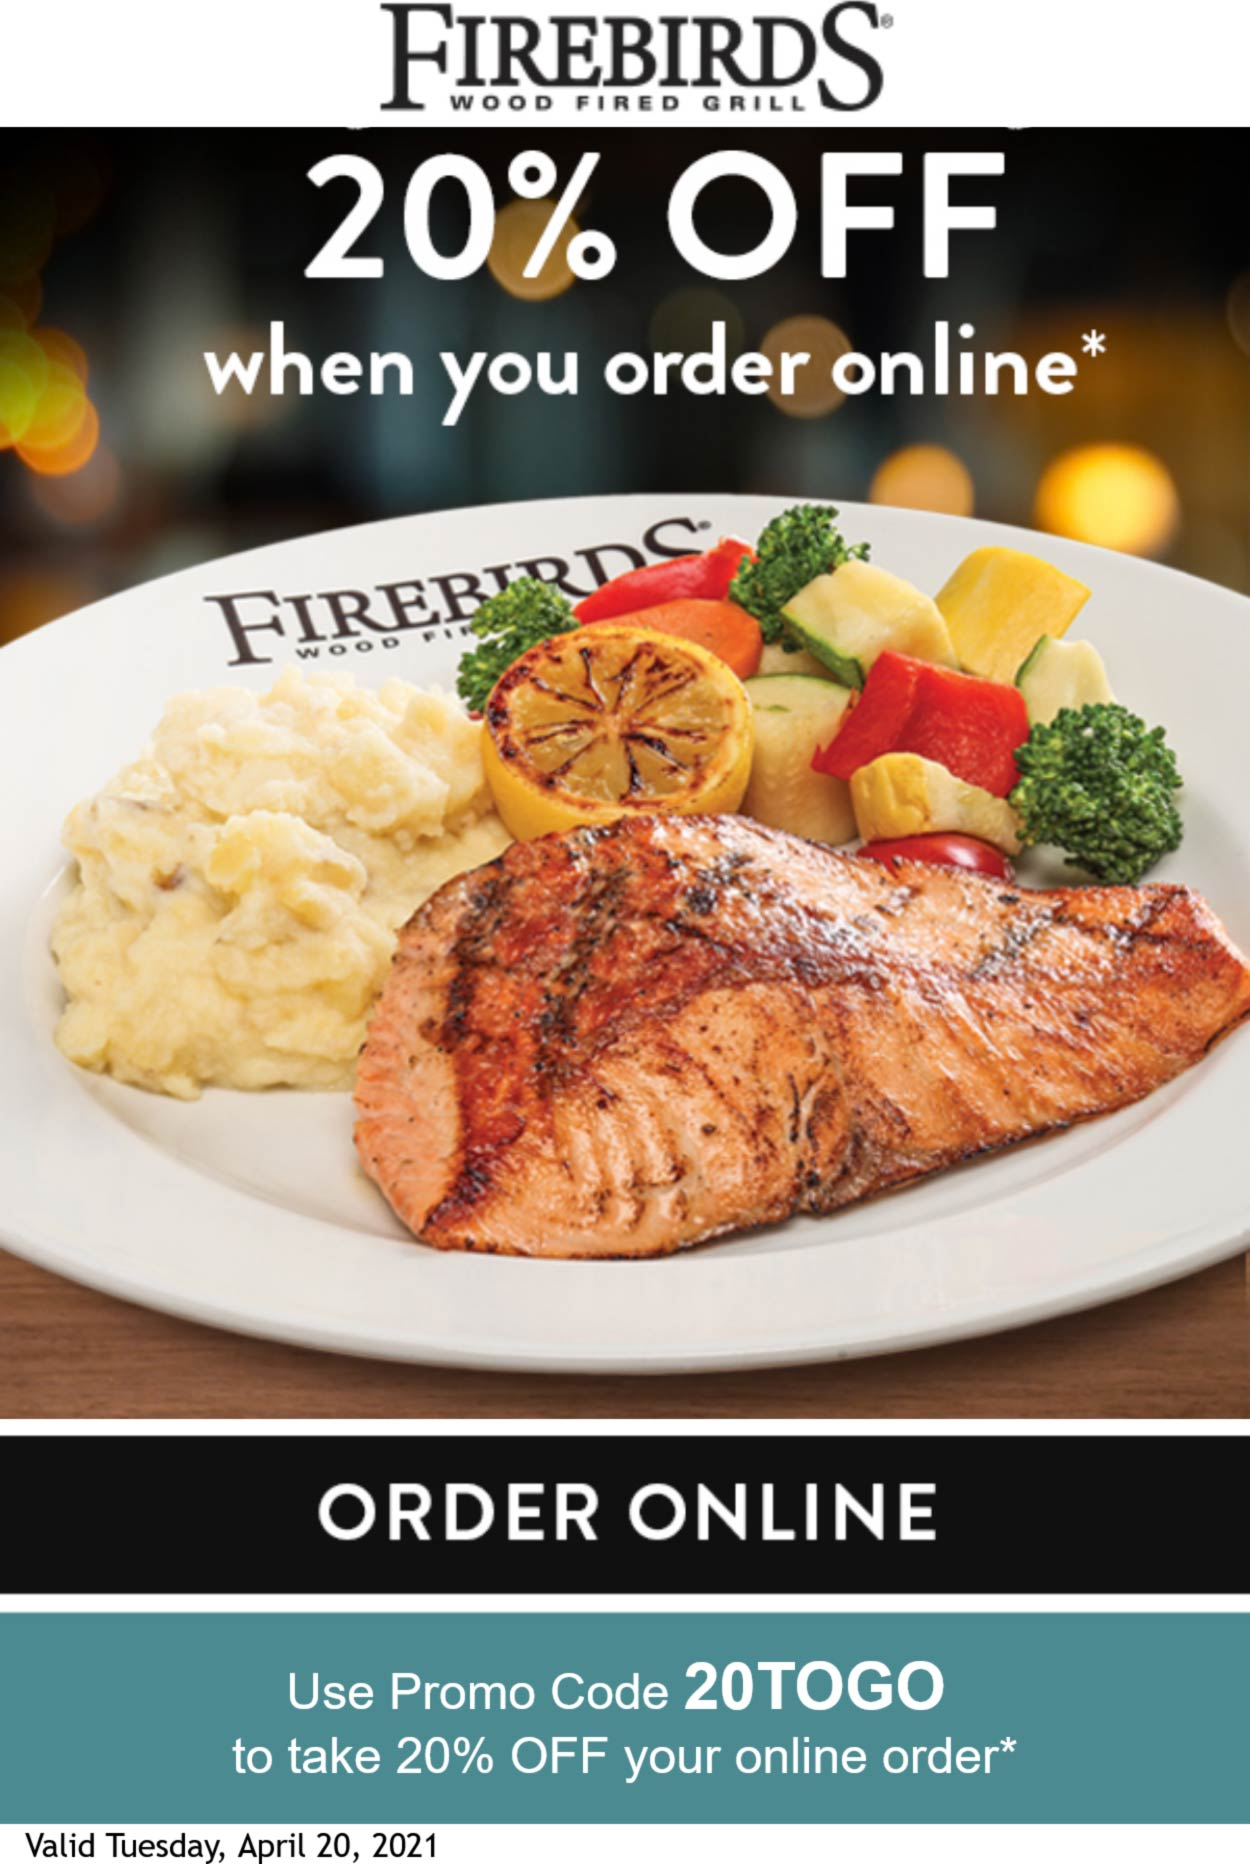 Firebirds restaurants Coupon  20% off takeout today at Firebirds wood fired grill via promo code 20TOGO #firebirds